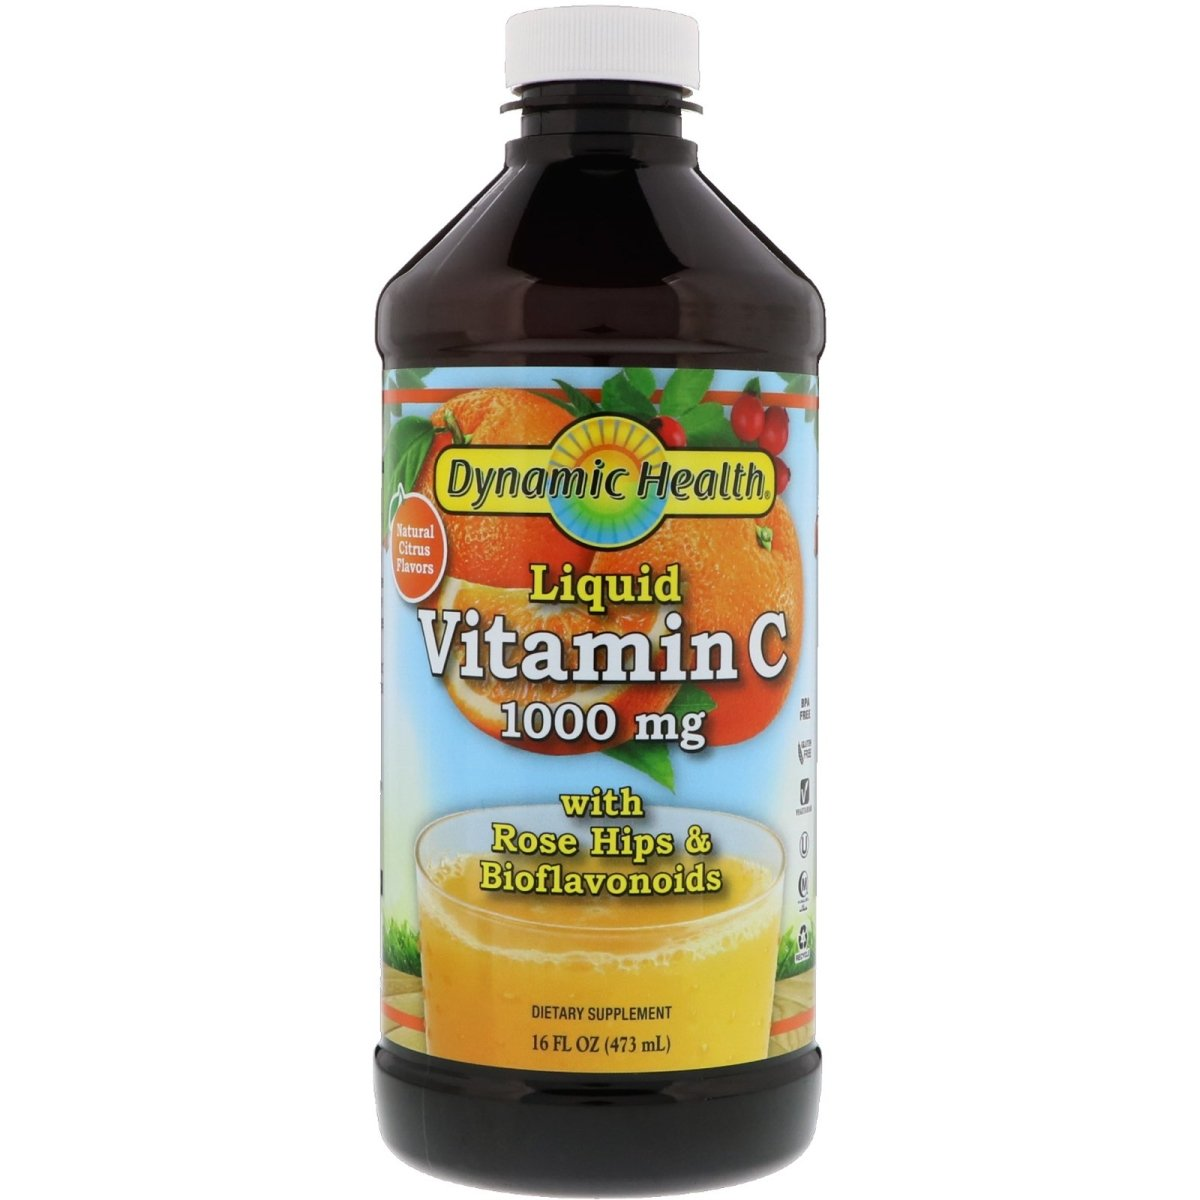 Vitamin C 1000mg with Rose Hips and Bioflavonoids